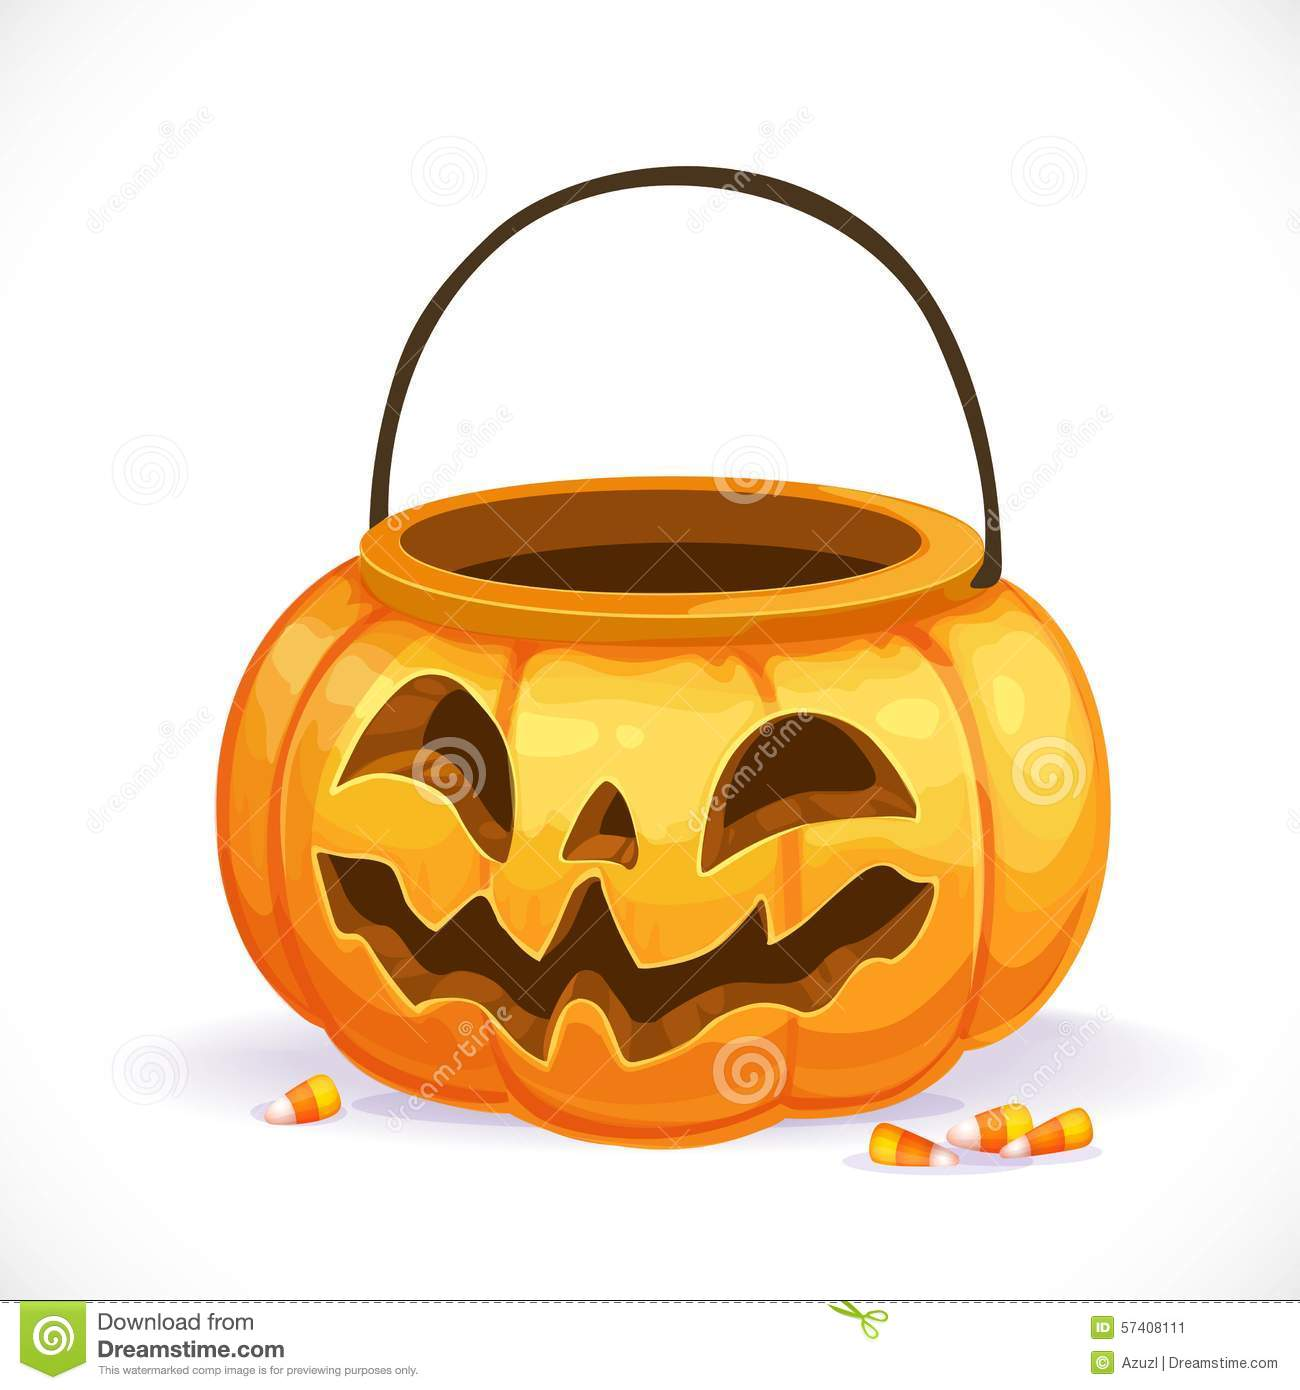 Orange Pumpkin Basket To Collect Candy On Halloween Stock Vector.